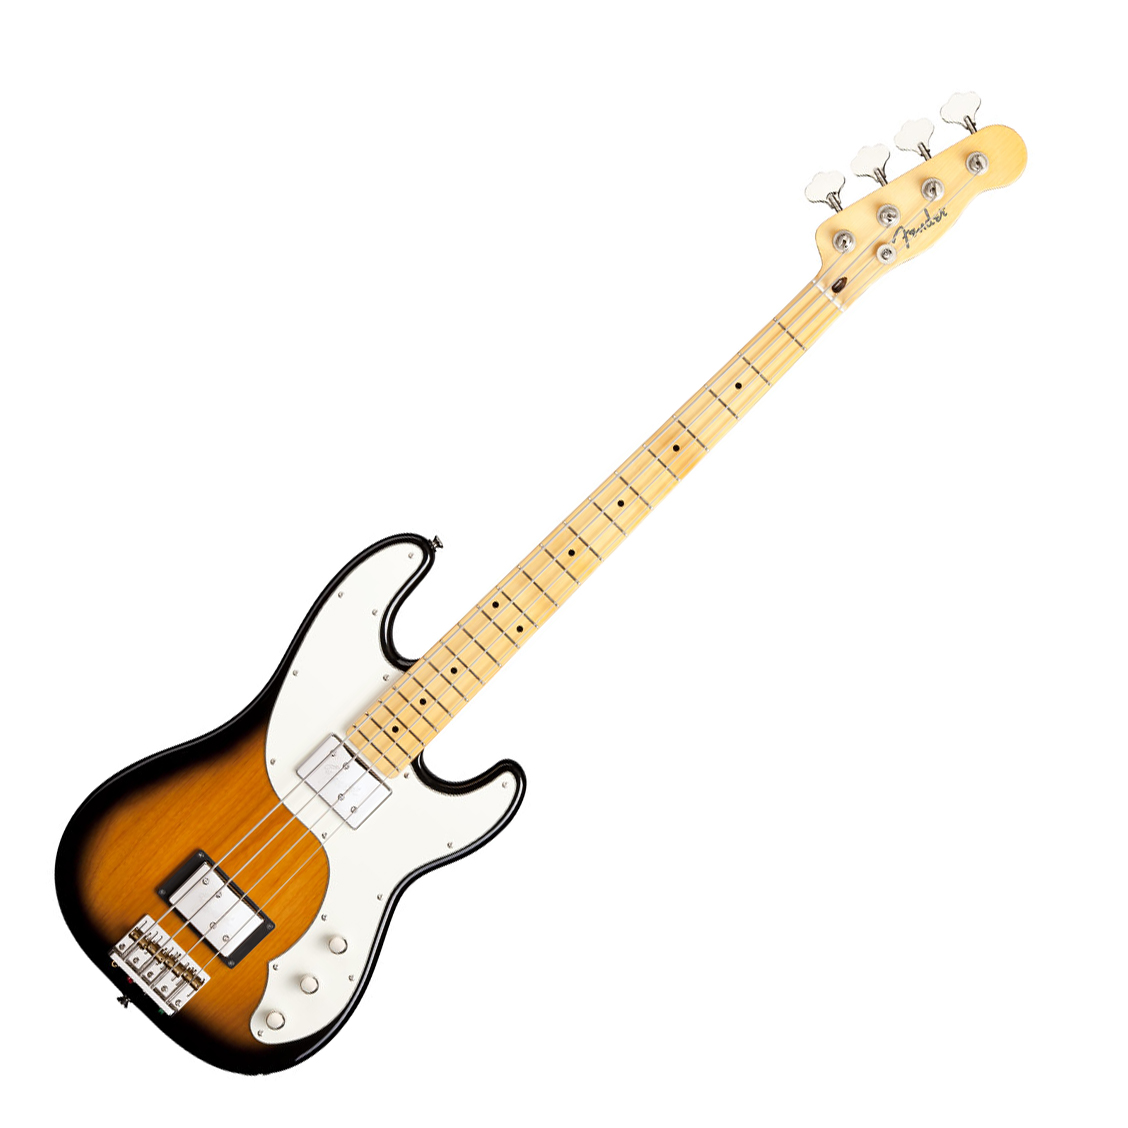 bass review for bassist fender modern player telecaster bass. Black Bedroom Furniture Sets. Home Design Ideas